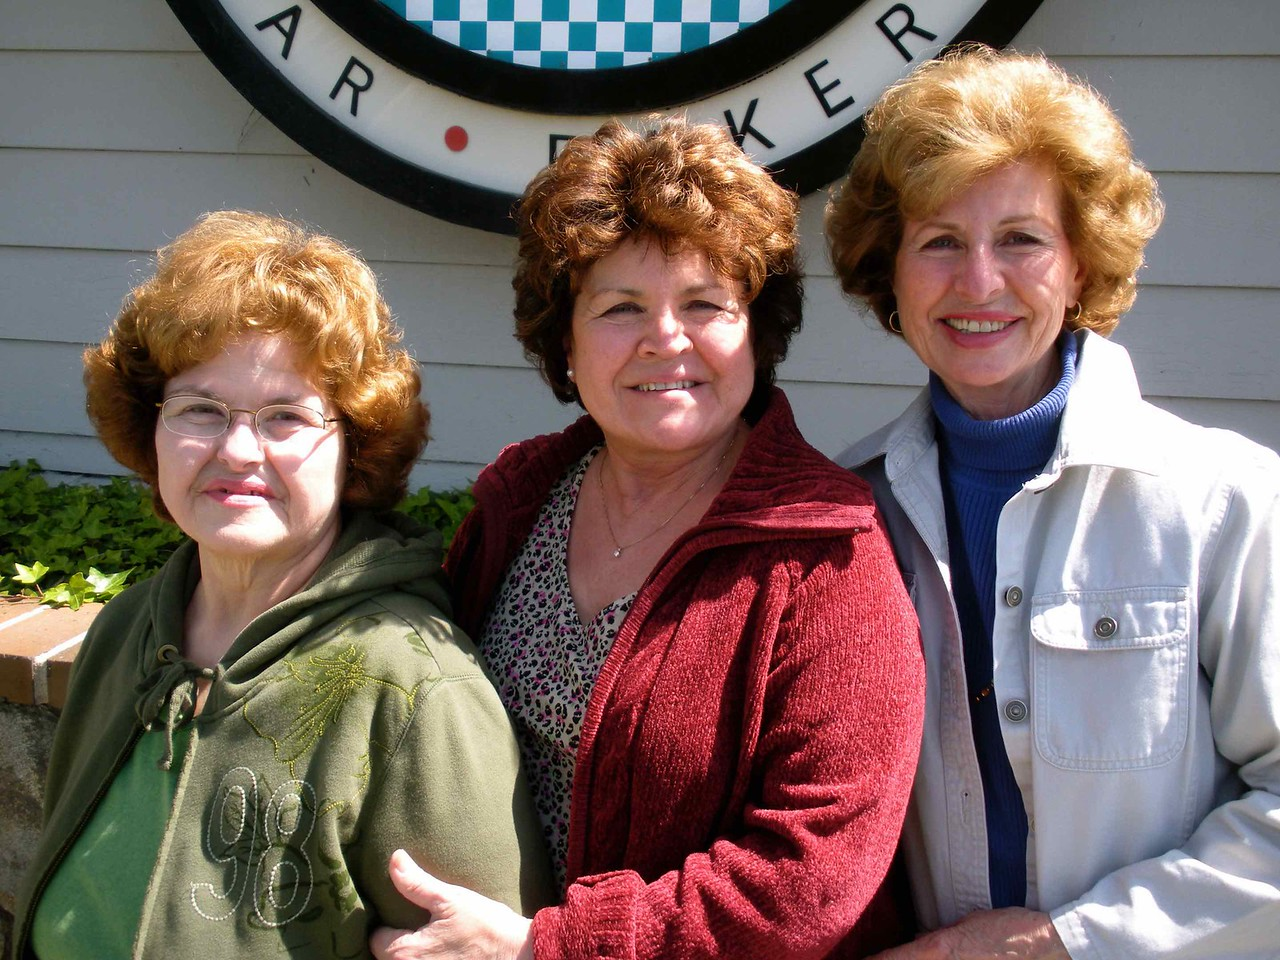 Joanne's Birthday Party at the Deli on March 23, 2009 with Betty, Ellen and Tom